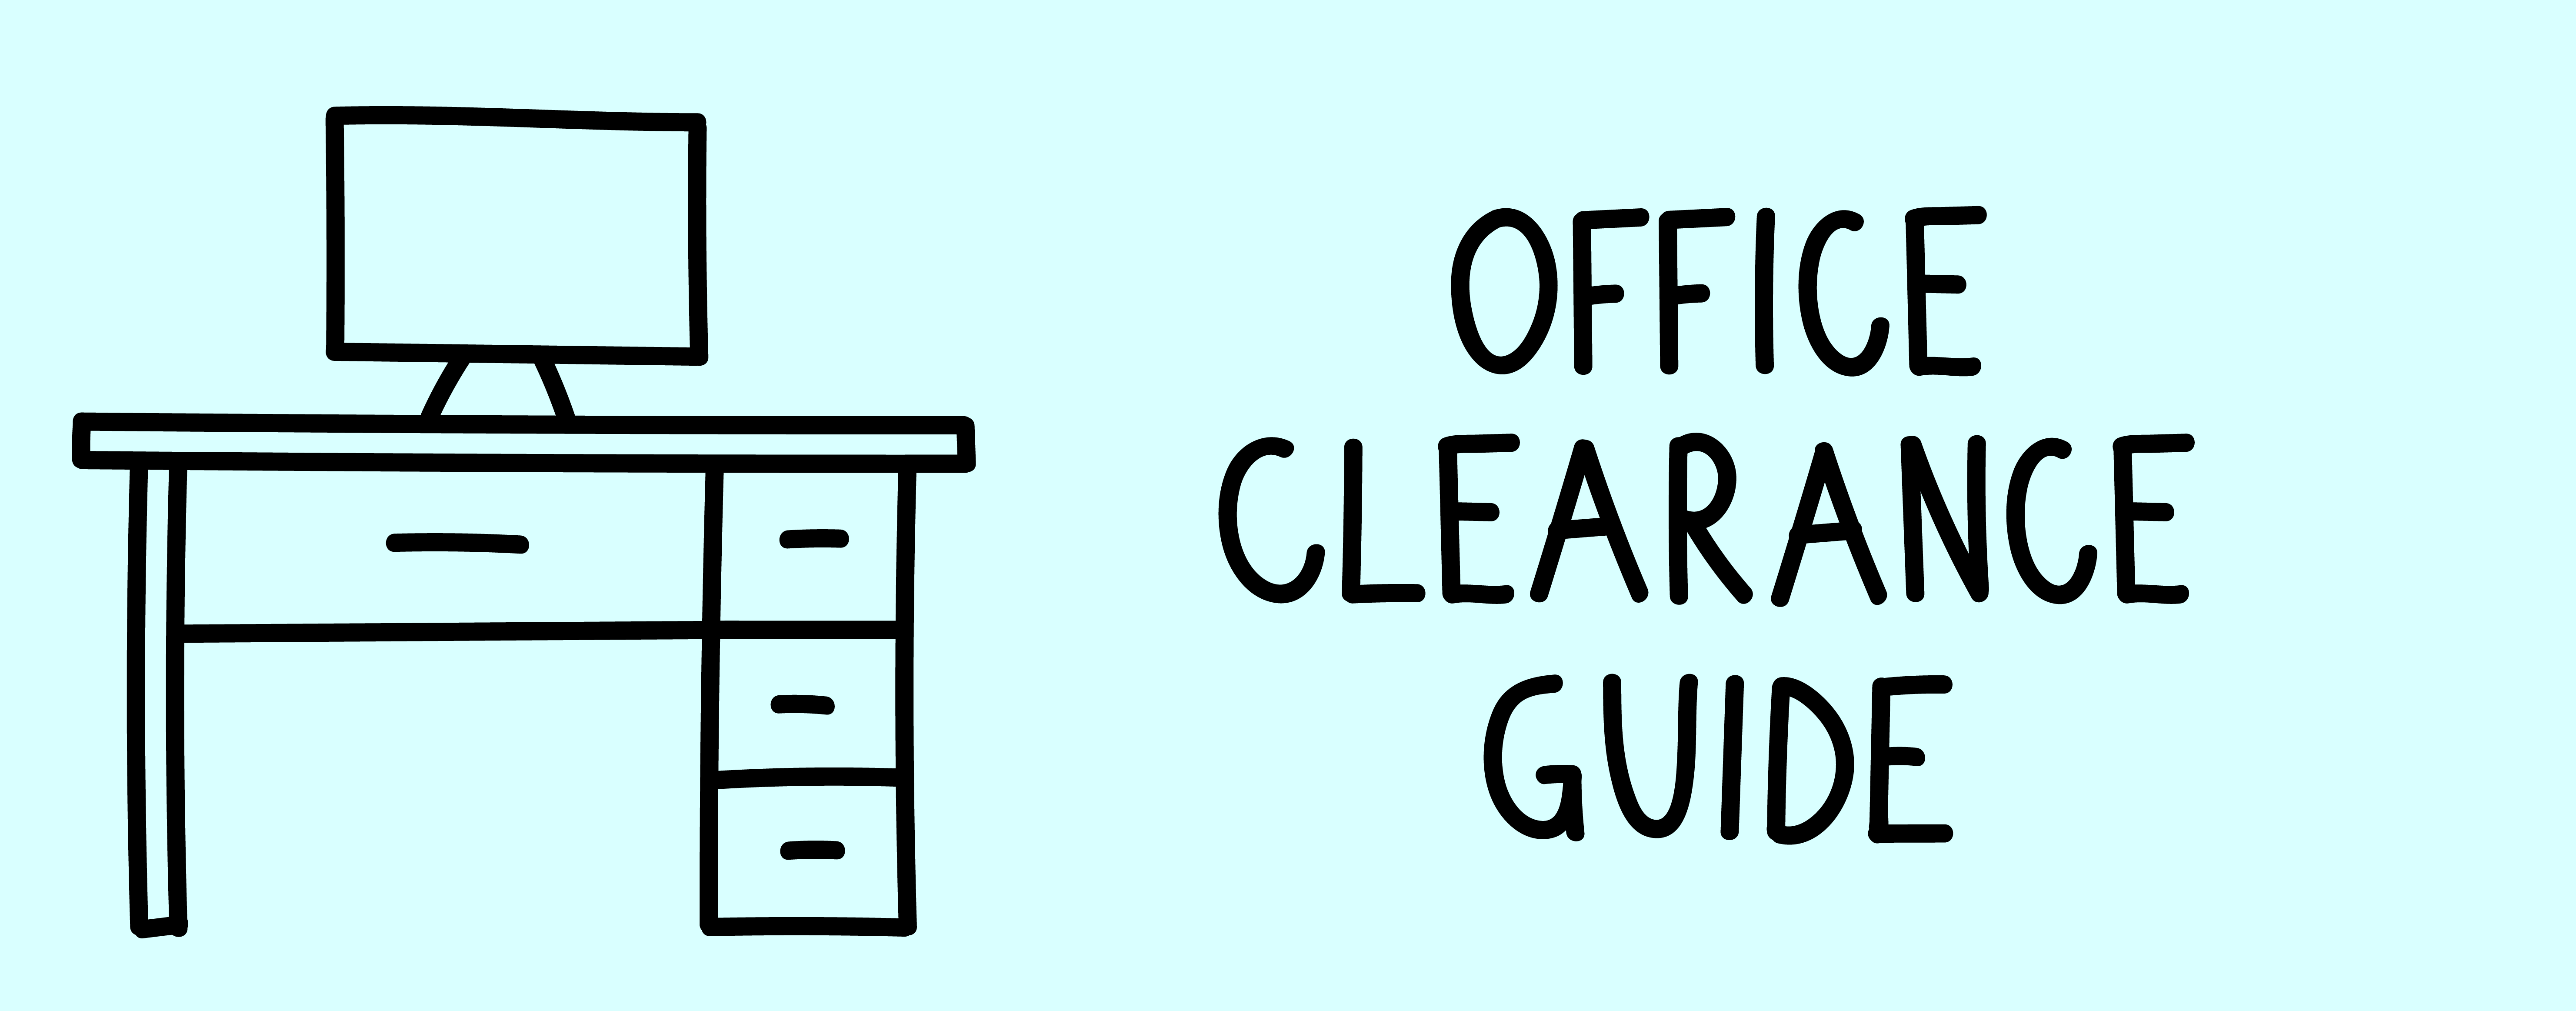 office clearance guide drawing of computer